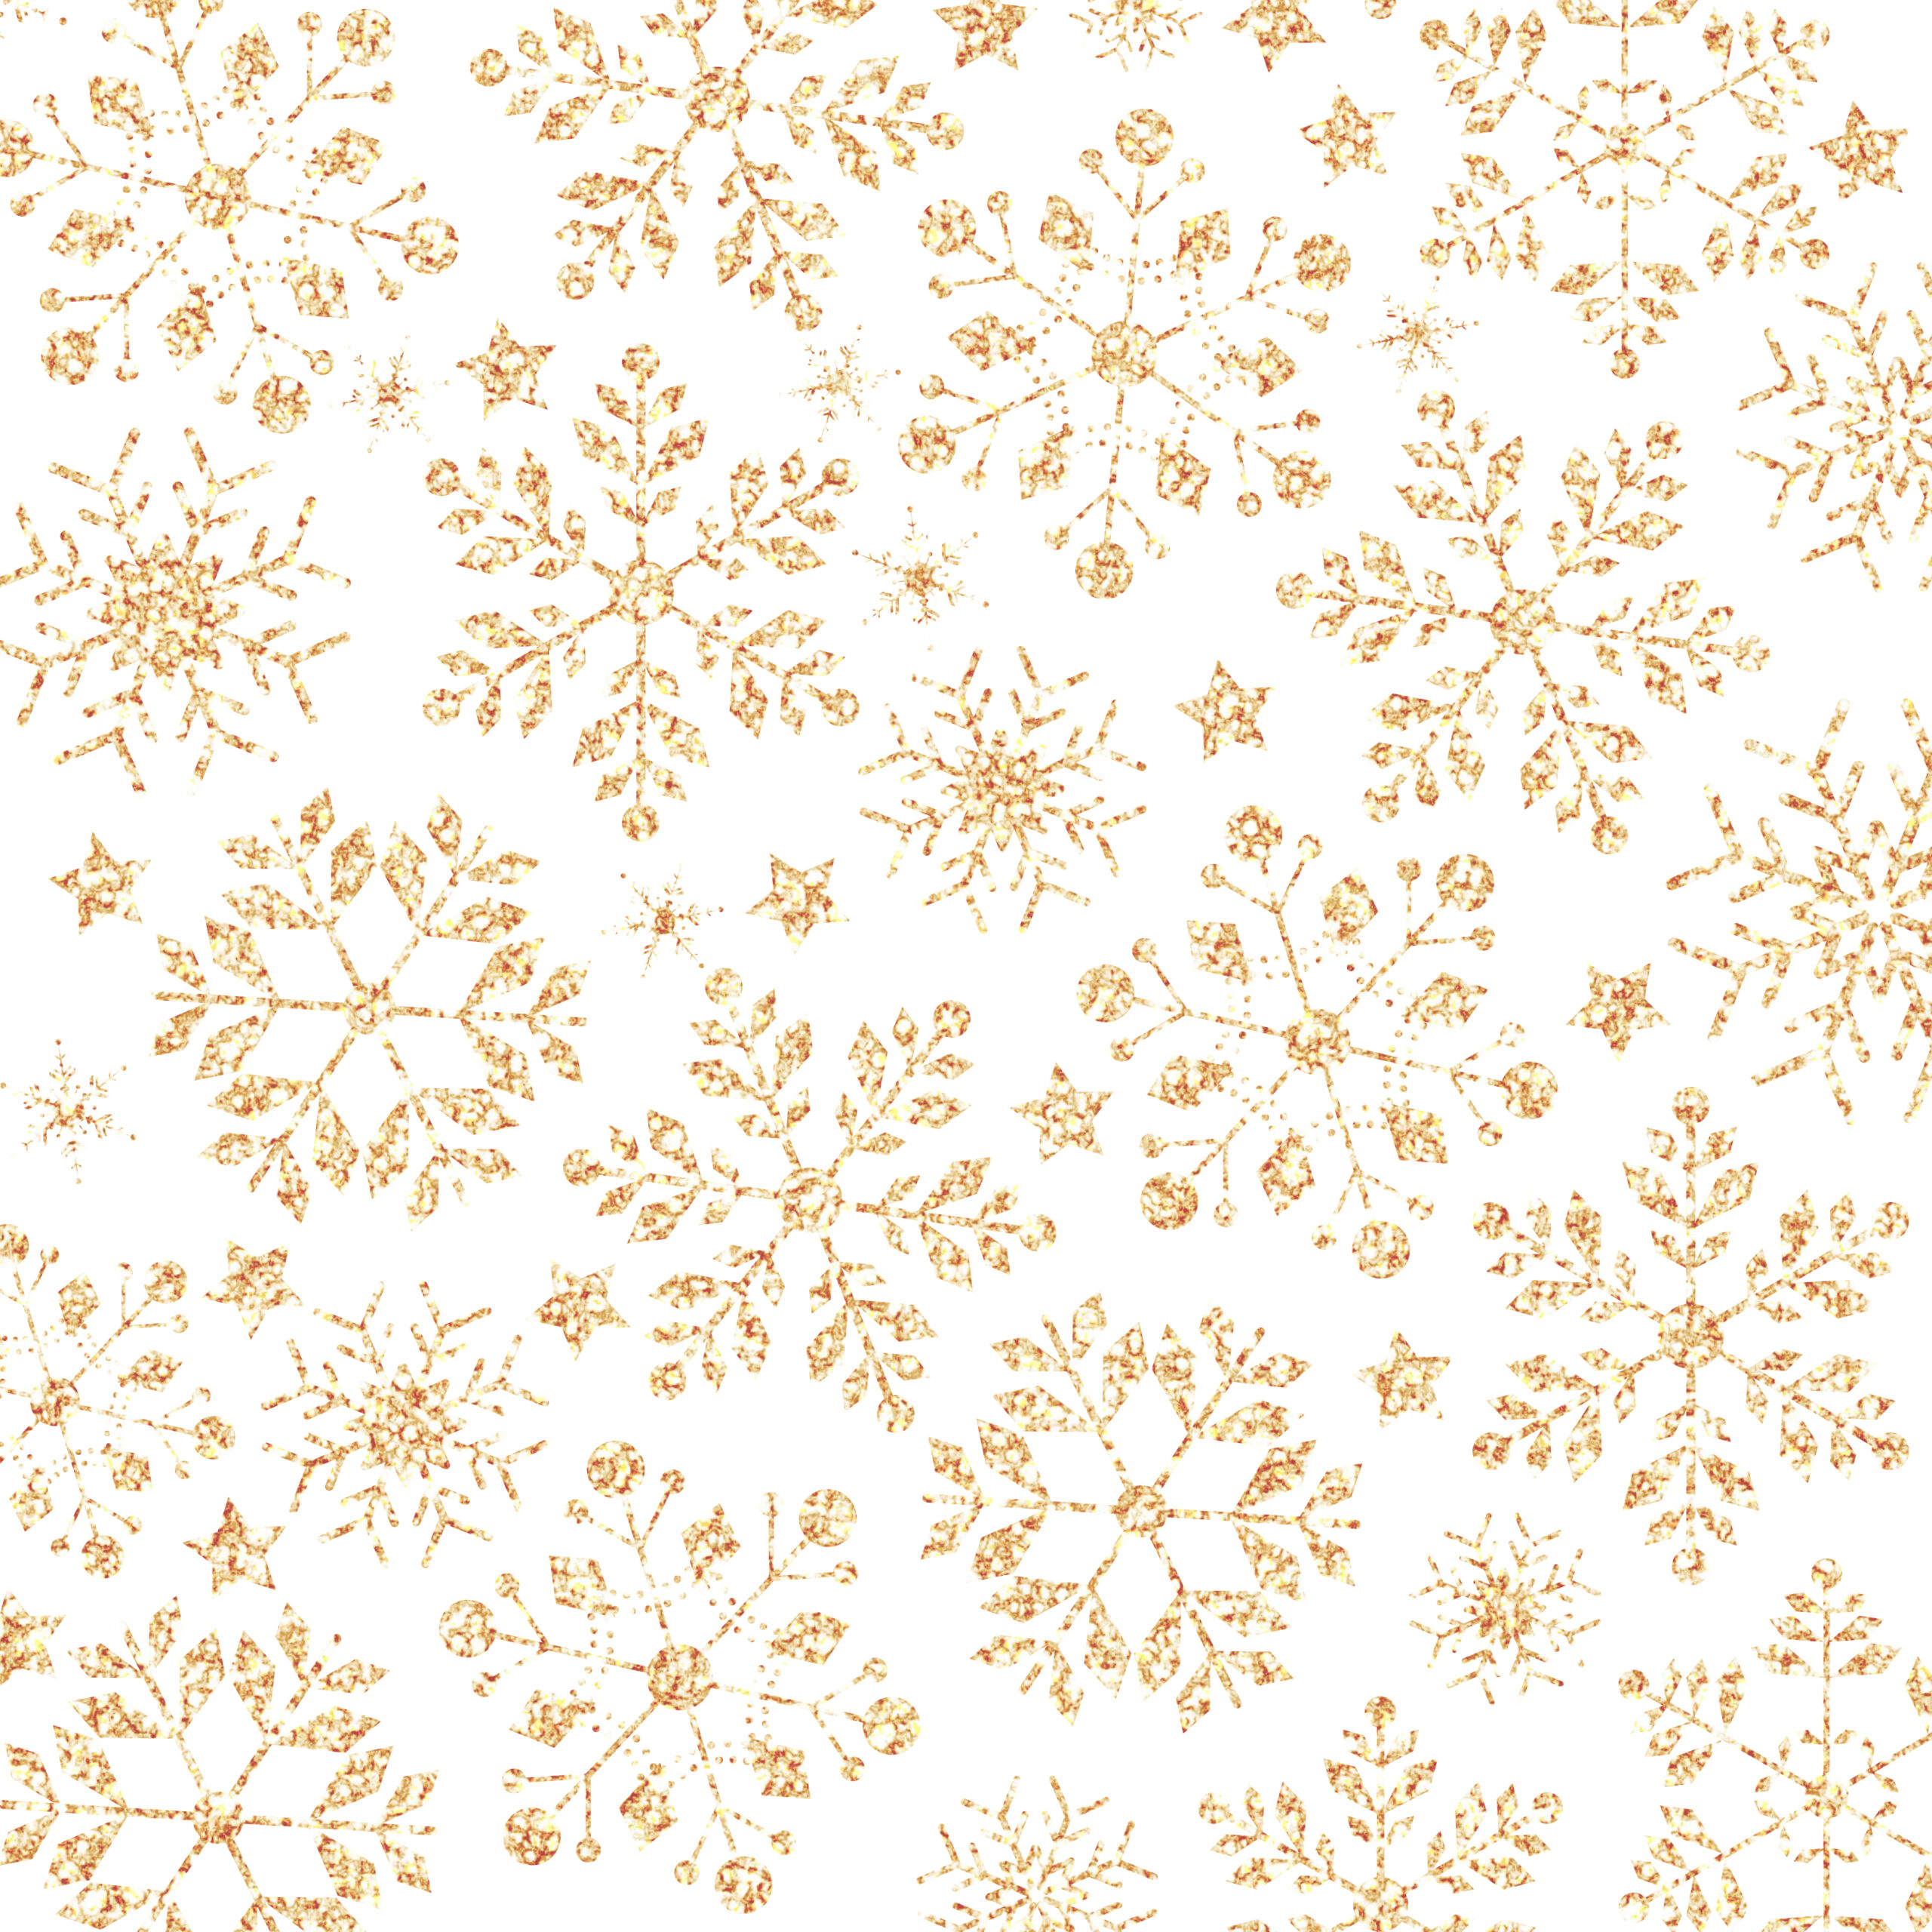 Free Sparkly Snowflake Digital Paper Backgrounds